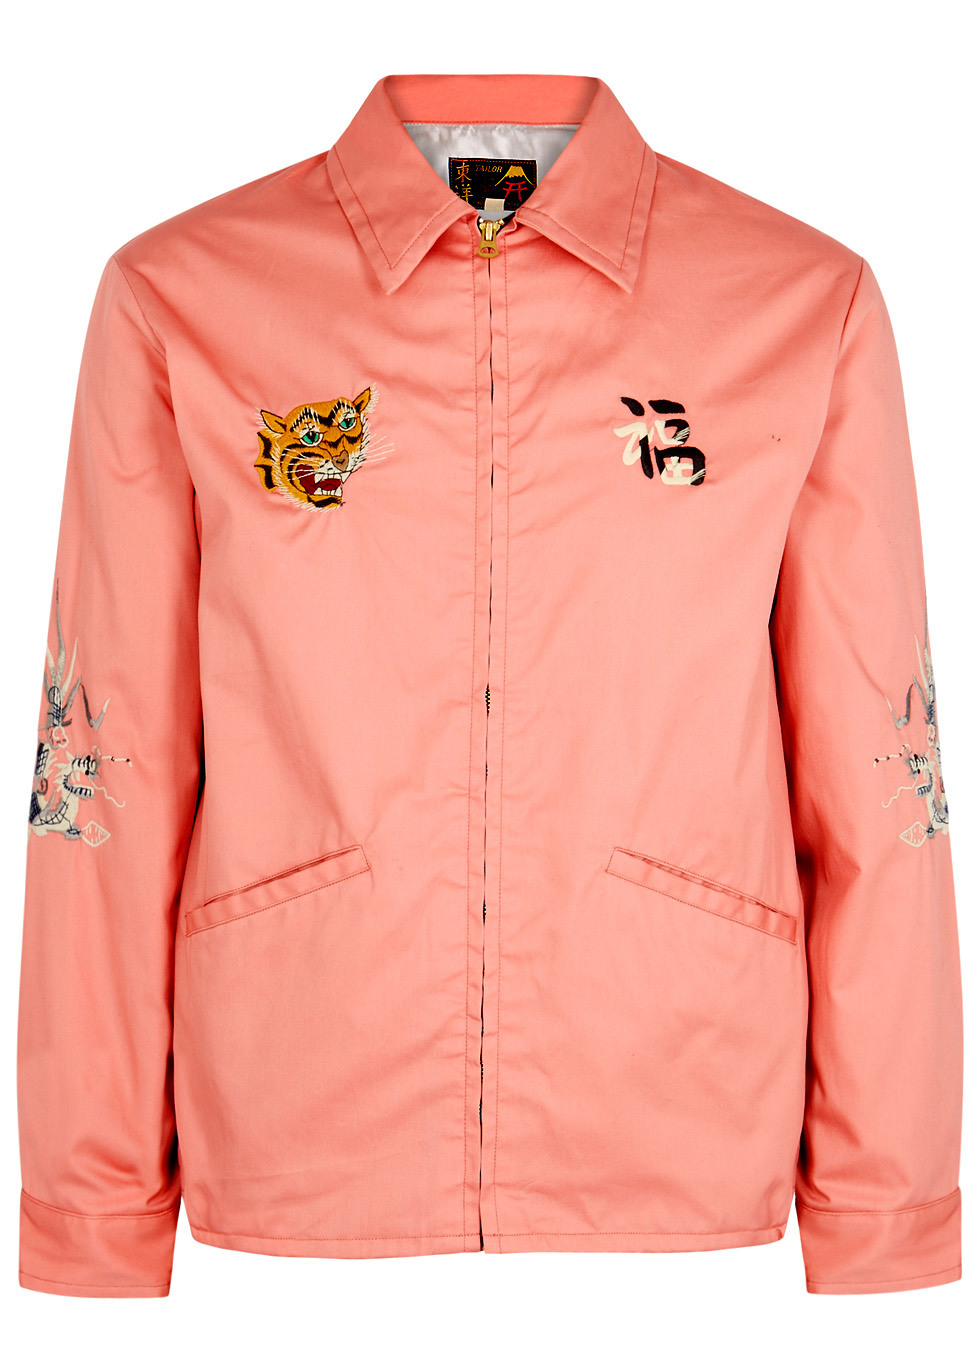 TAILOR TOYO PINK EMBROIDERED COTTON JACKET